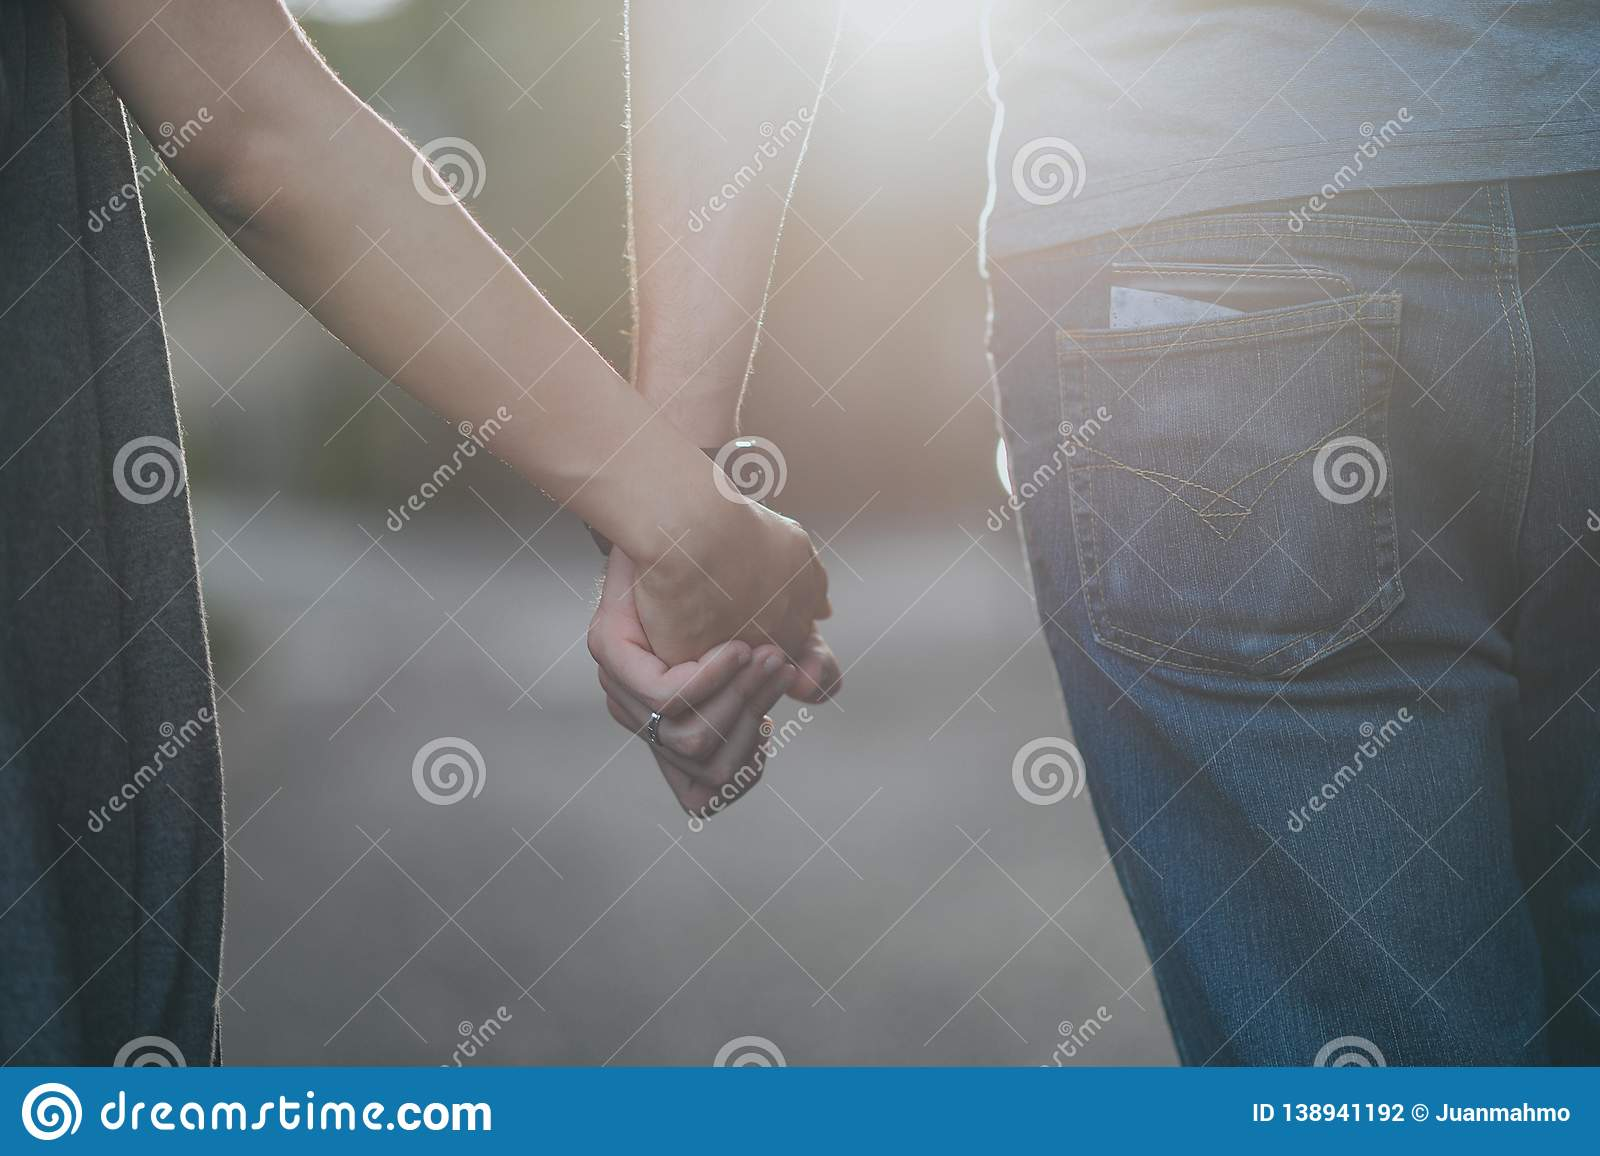 Smooth Focus,Valentine couples walking hand in hand, along the road with white light coming straight from the front and promised